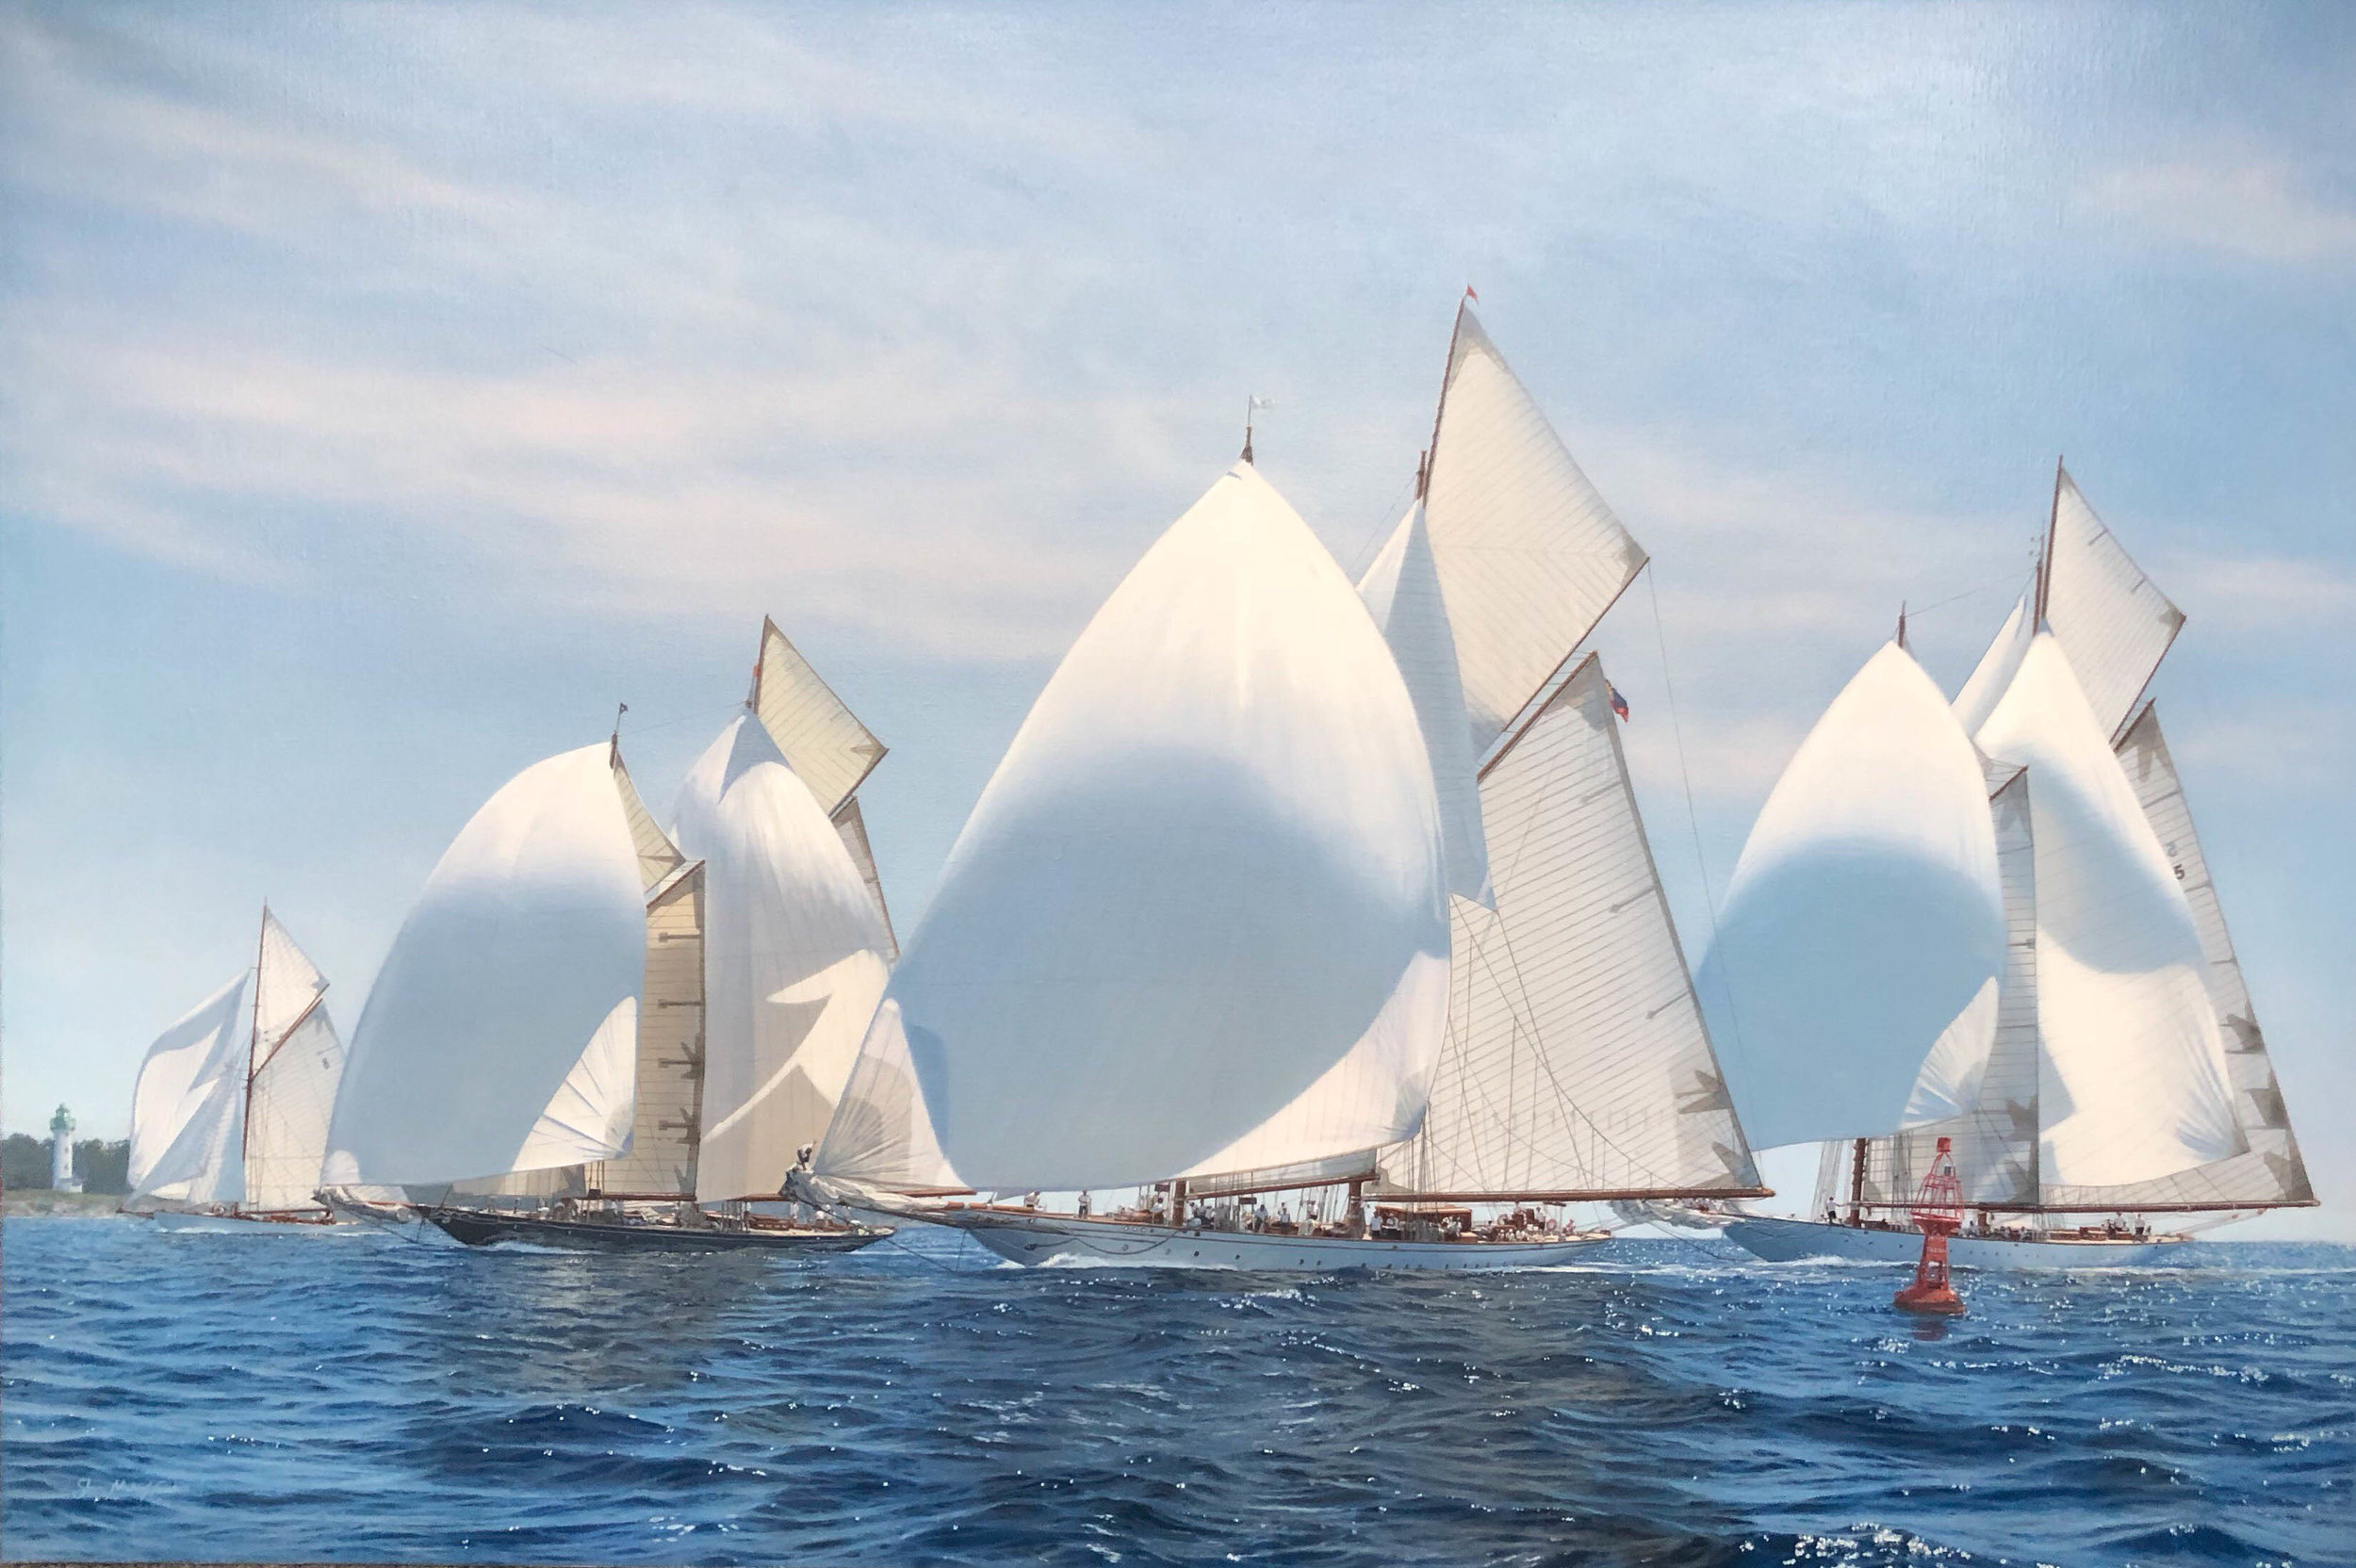 The schooner Fleet